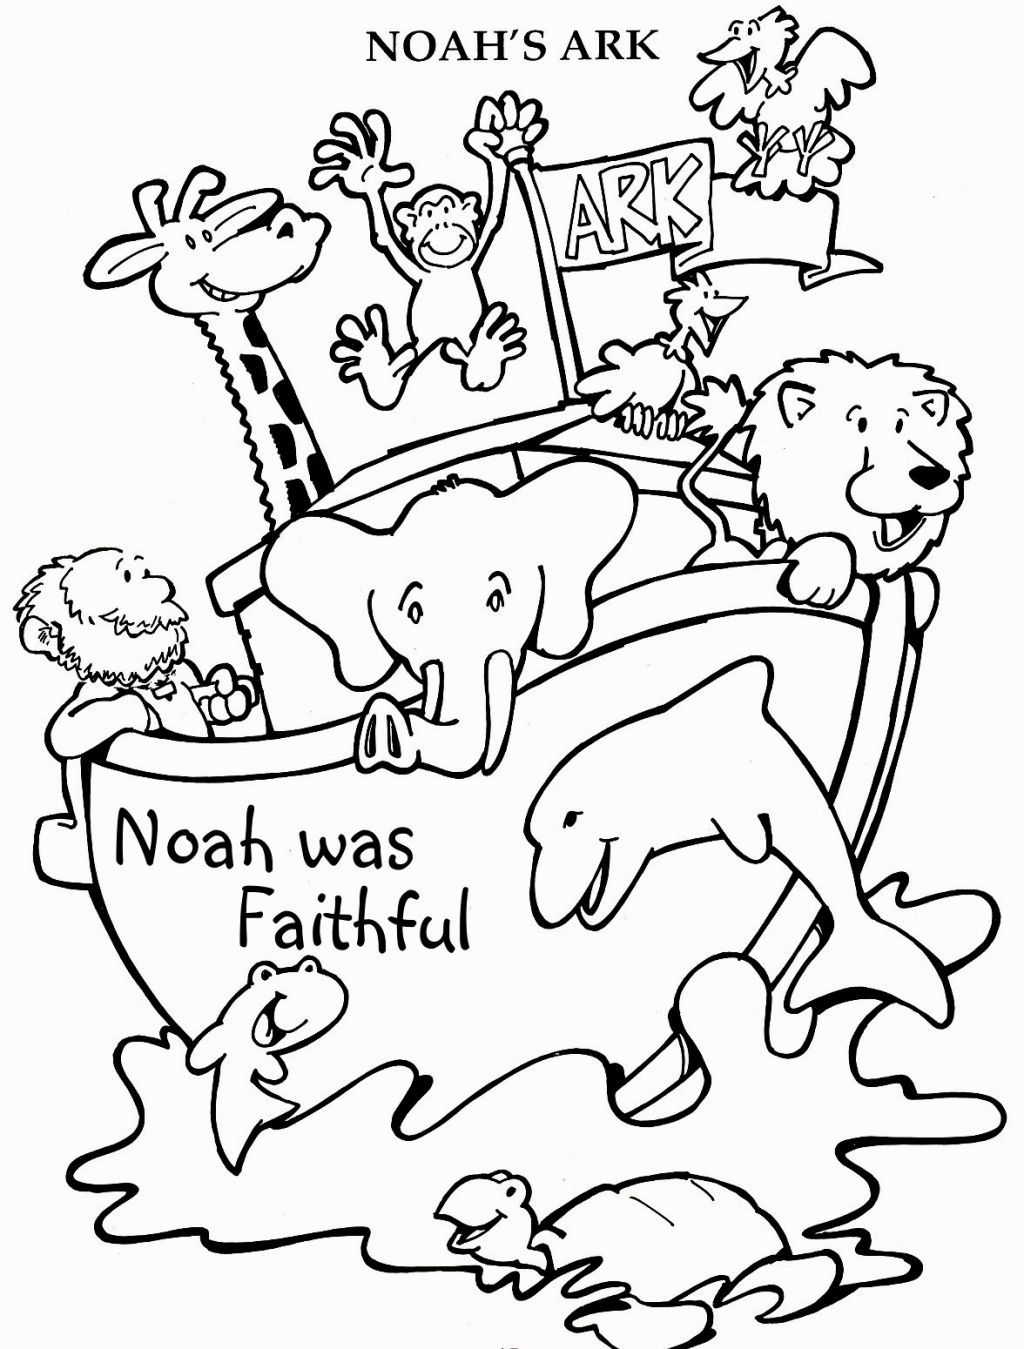 Noahs Ark Coloring Pages | Coloring Pages | Pinterest | Sunday ...